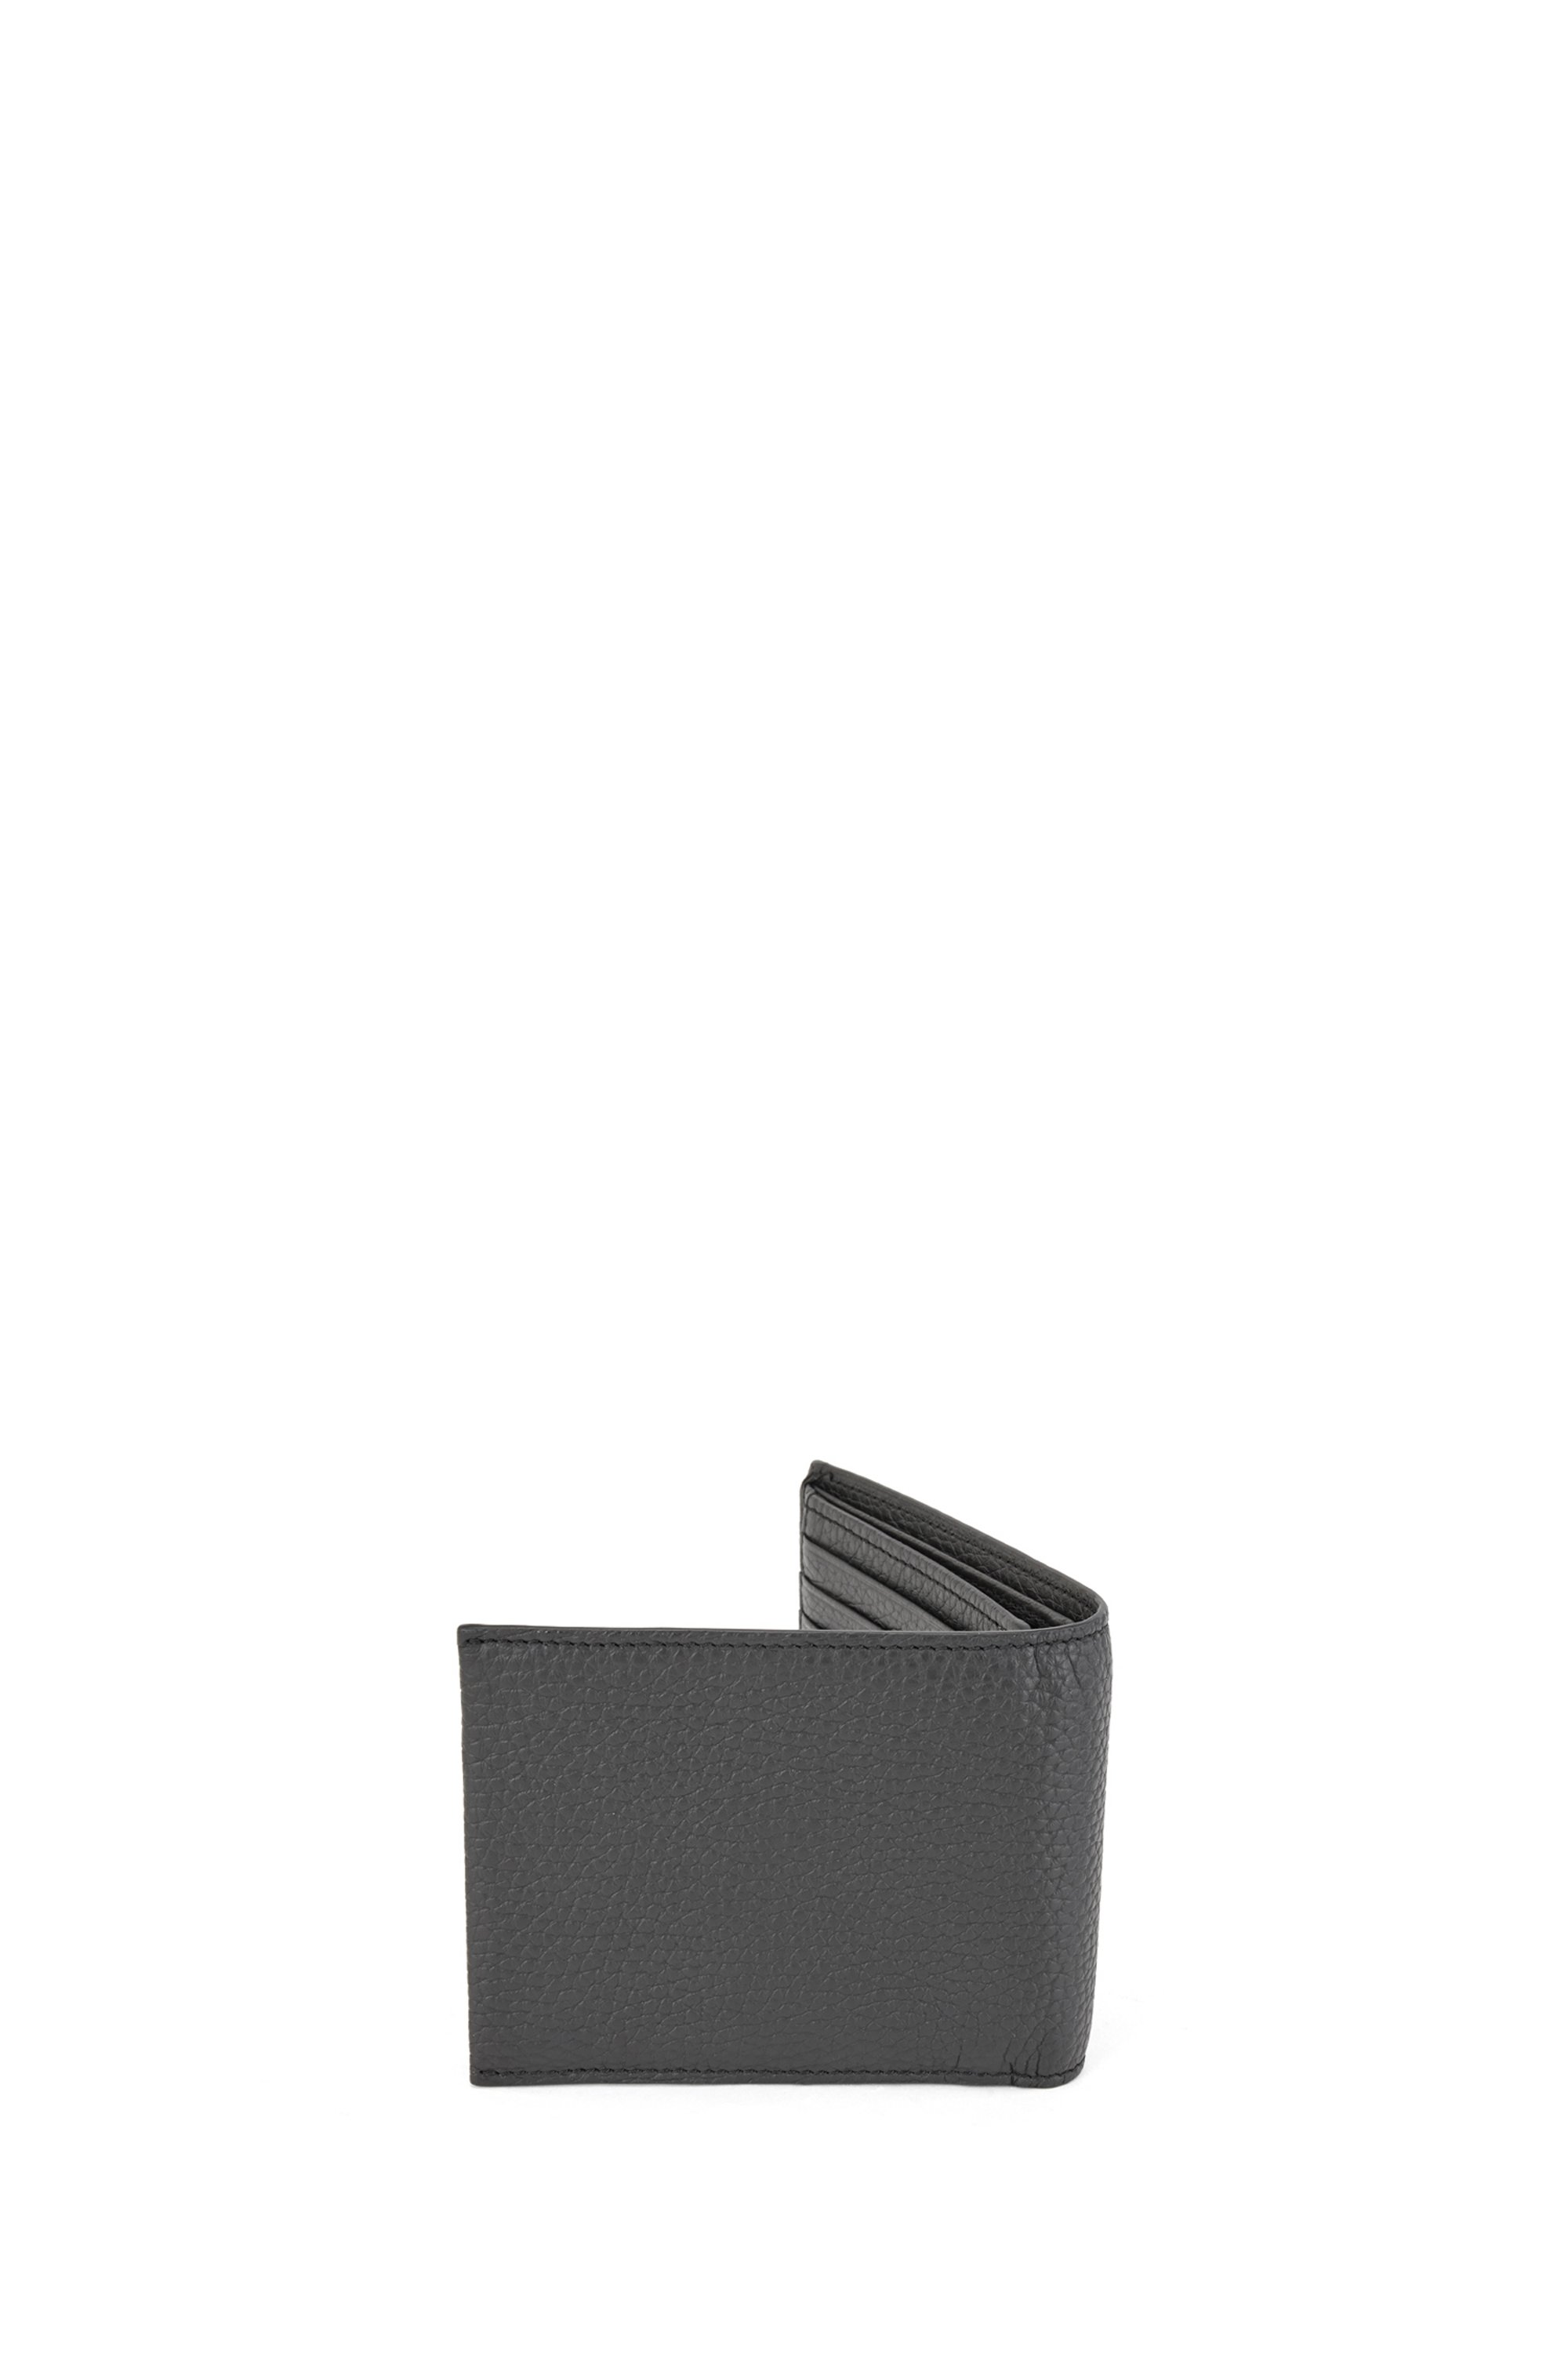 Trifold wallet in grained Italian leather with coin pocket